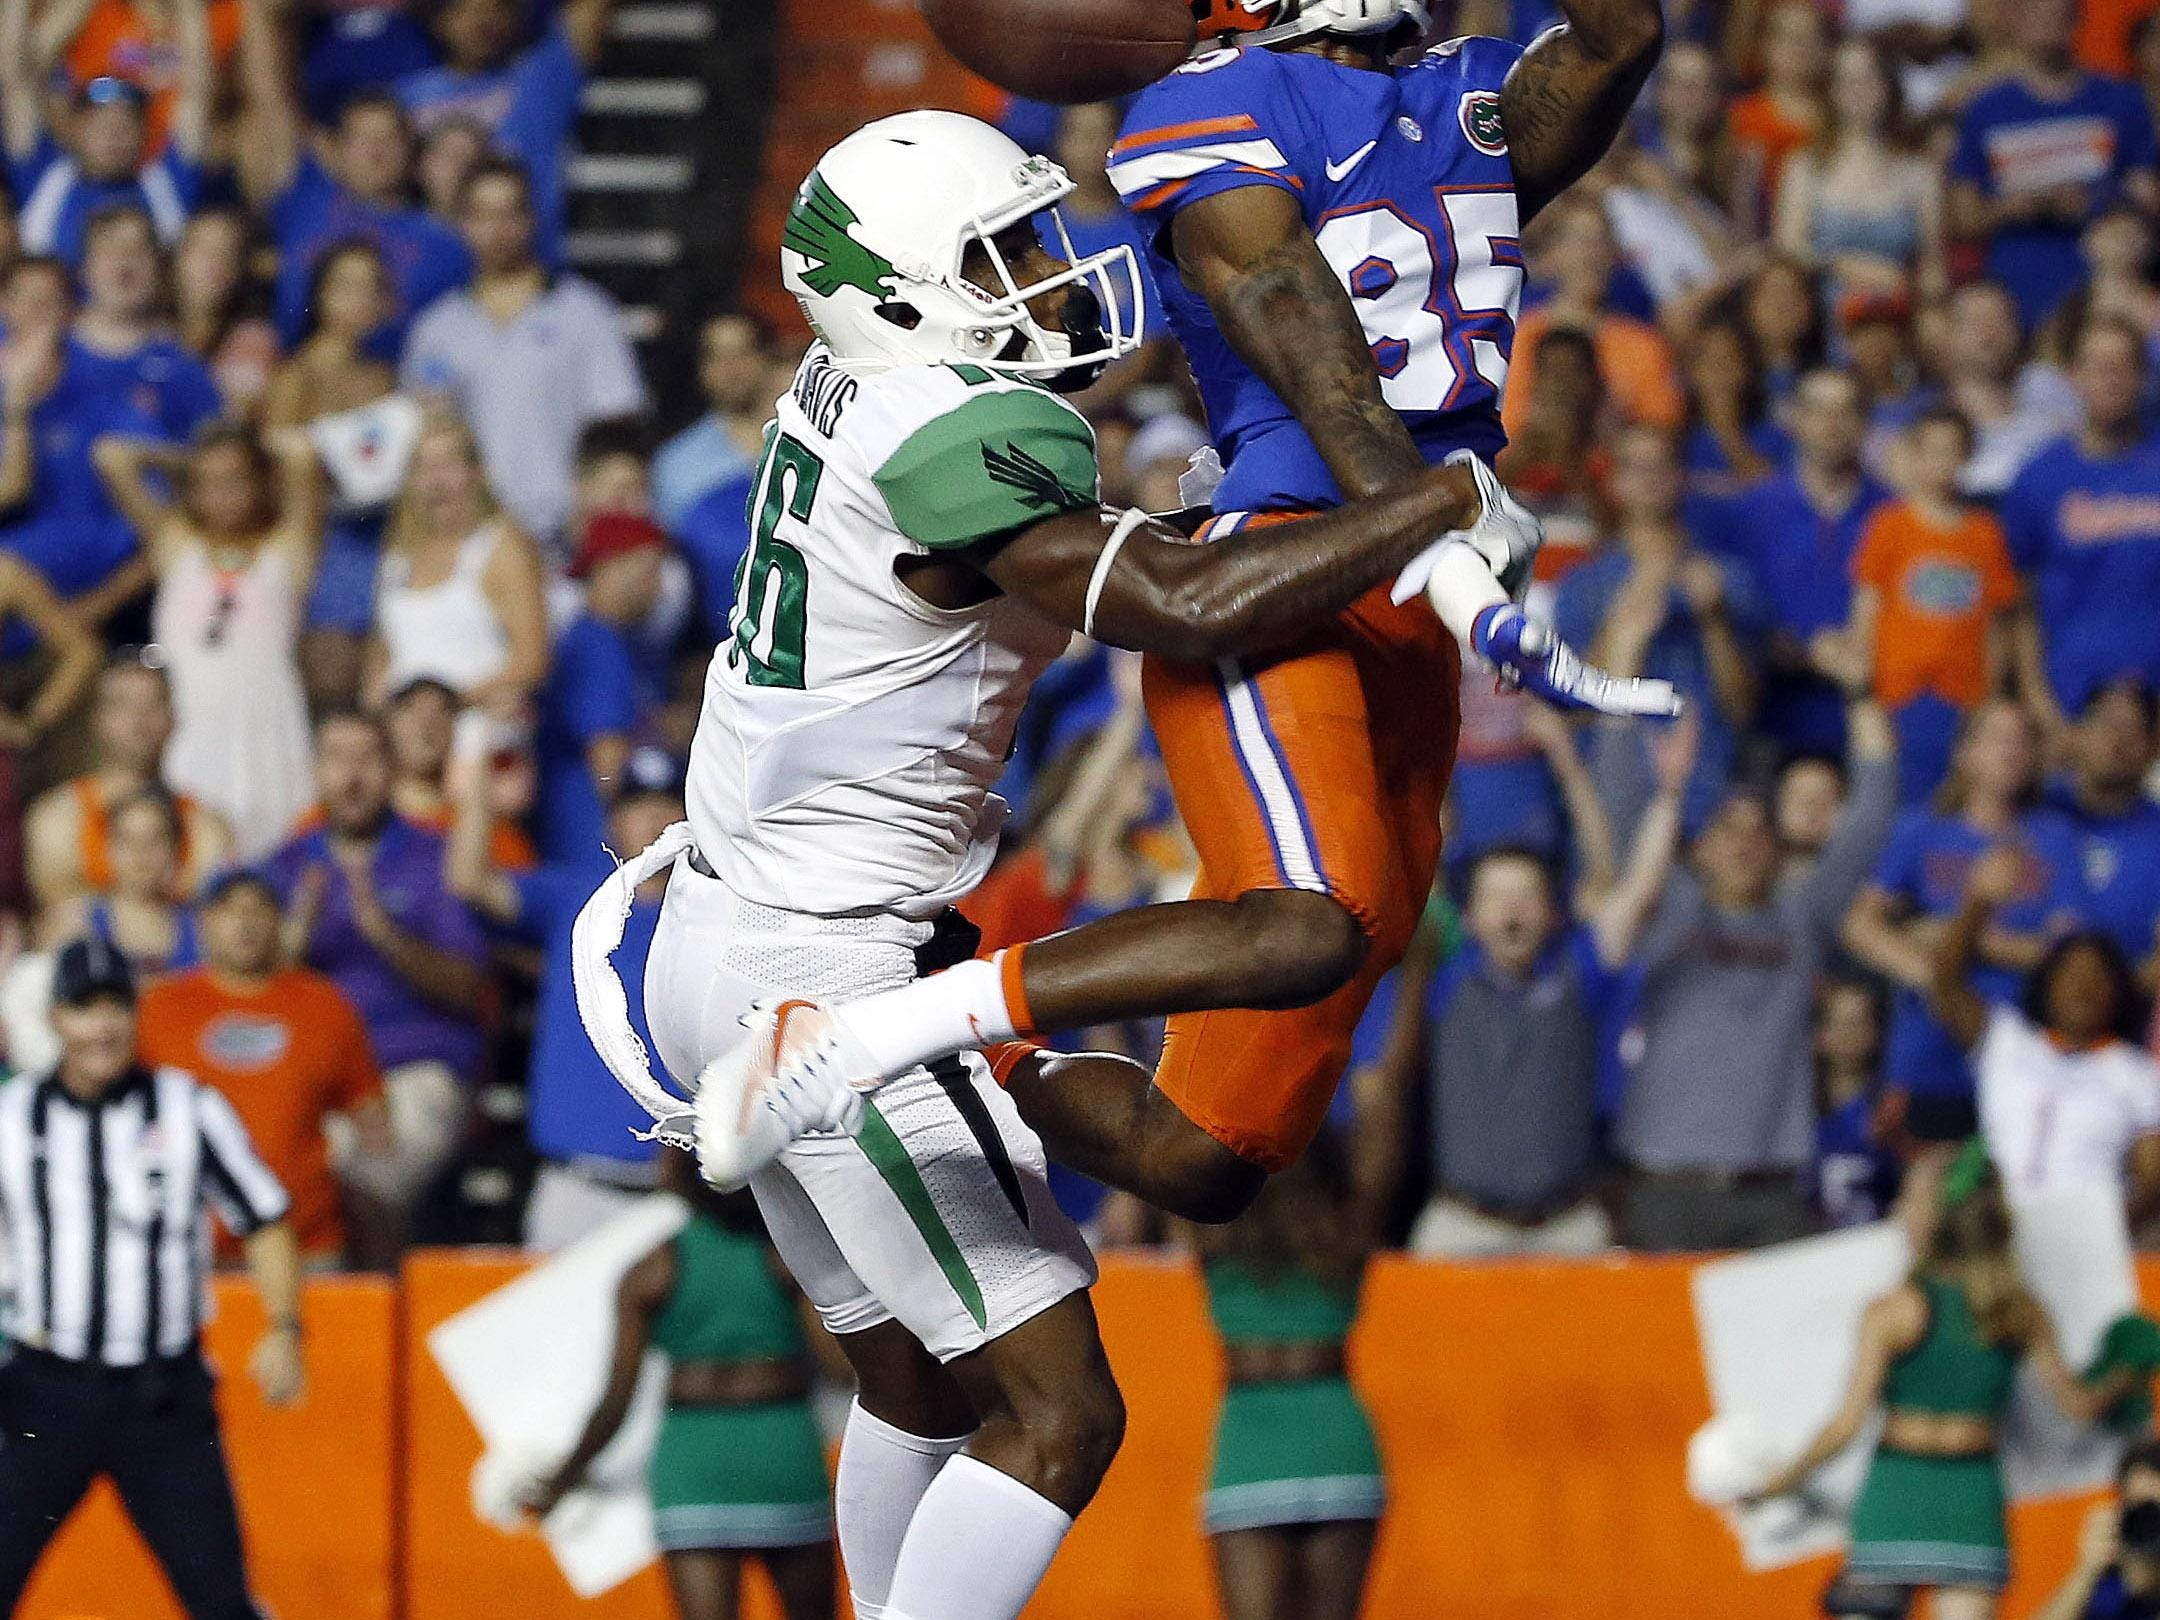 North Texas defensive back Chad Davis is called for pass interference against Florida wide receiver Chris Thompson on Saturday.